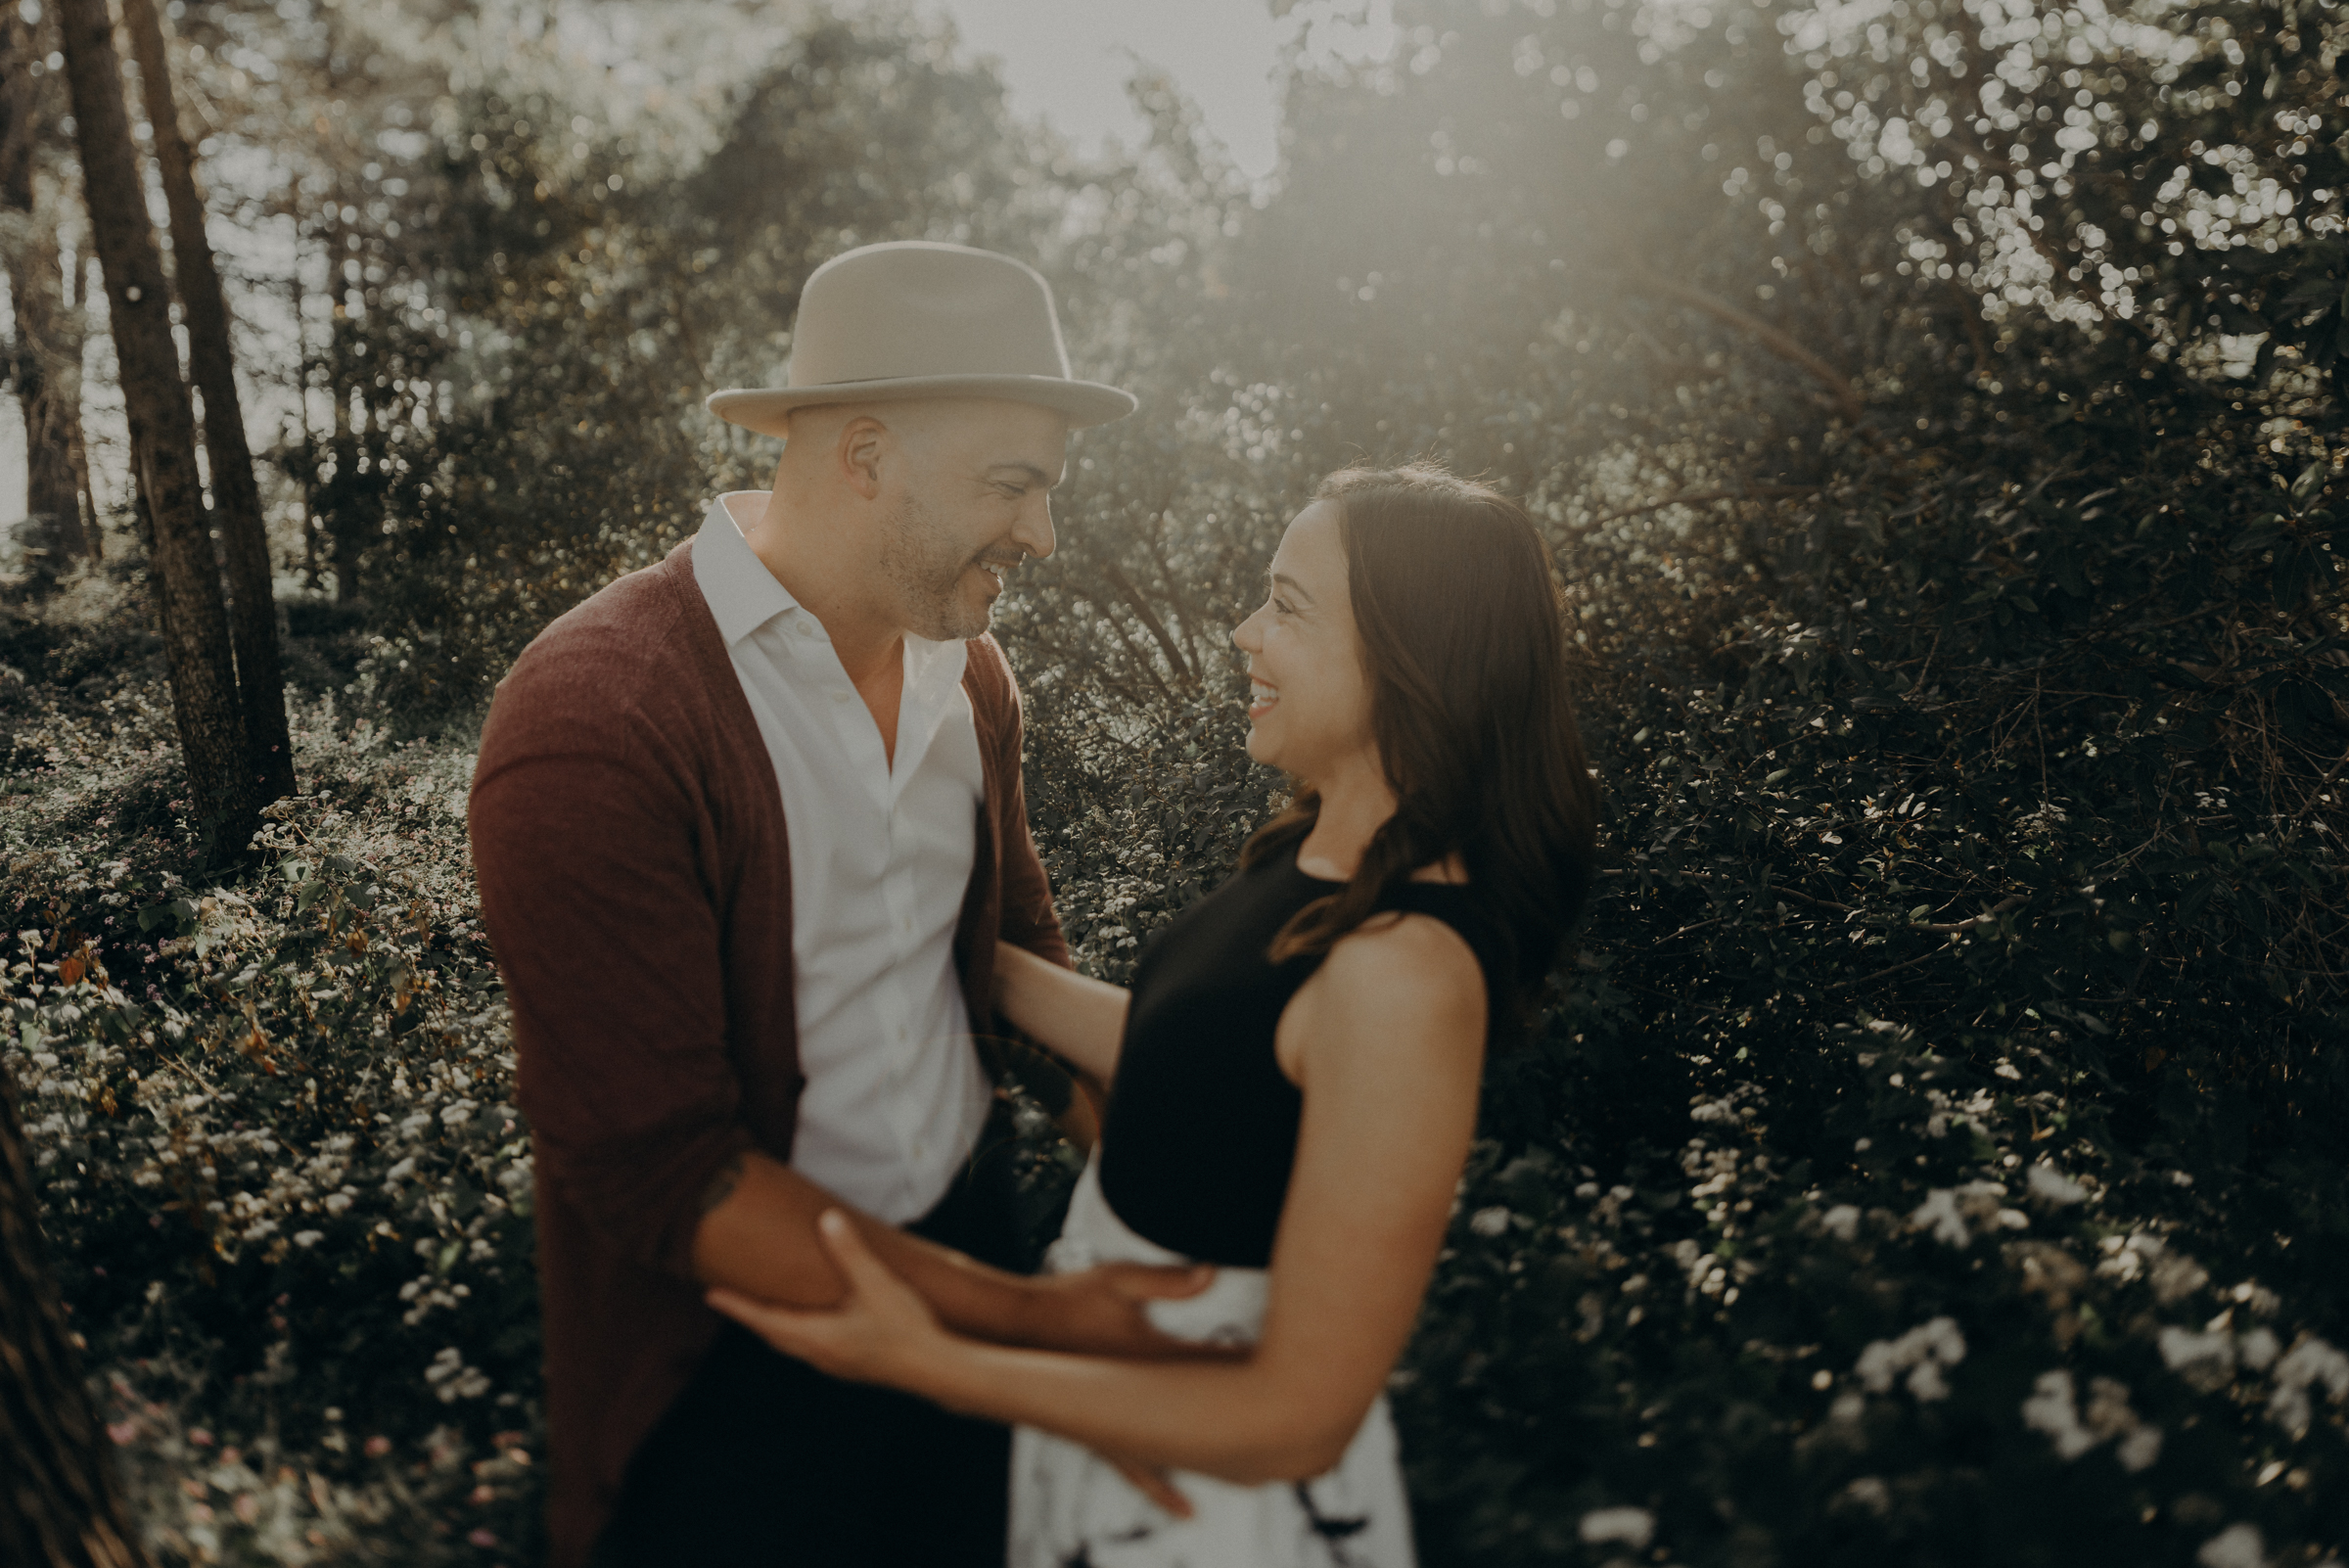 Los Angeles Wedding Photographers - Griffith Park Engagement - IsaiahAndTaylor.com-002.jpg